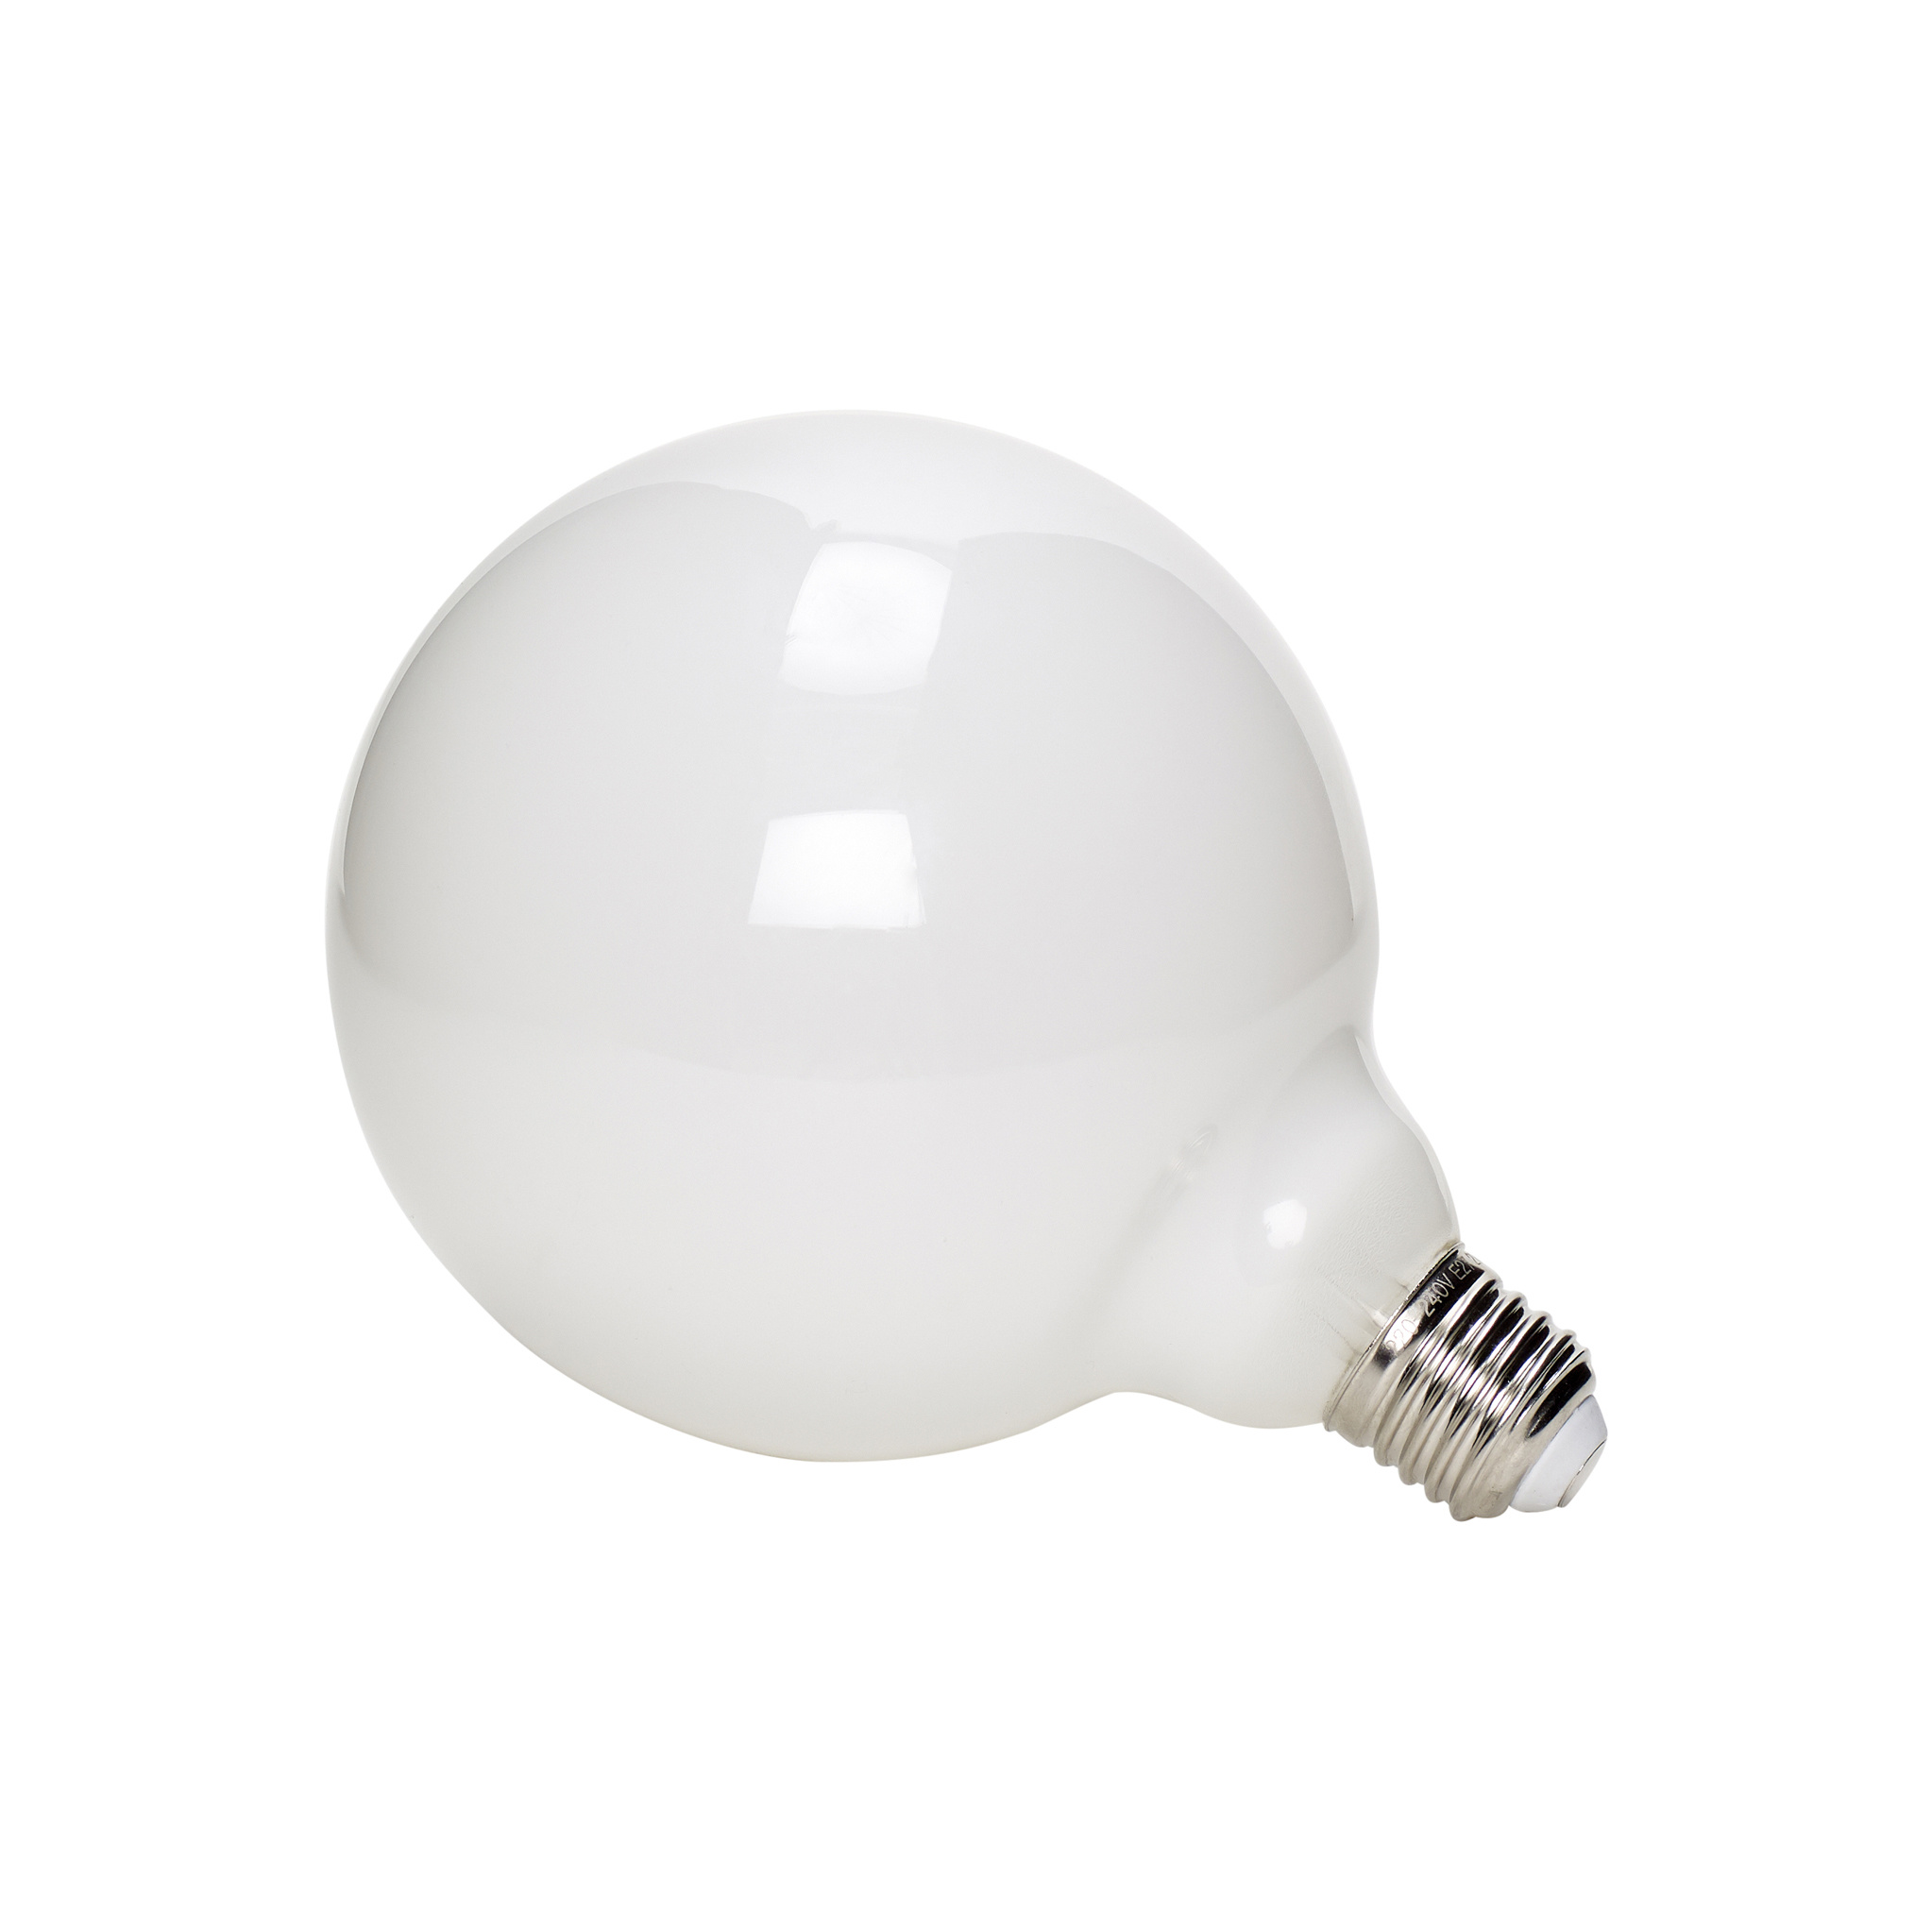 Hubsch LED-lamp, wit-990899-5712772069721